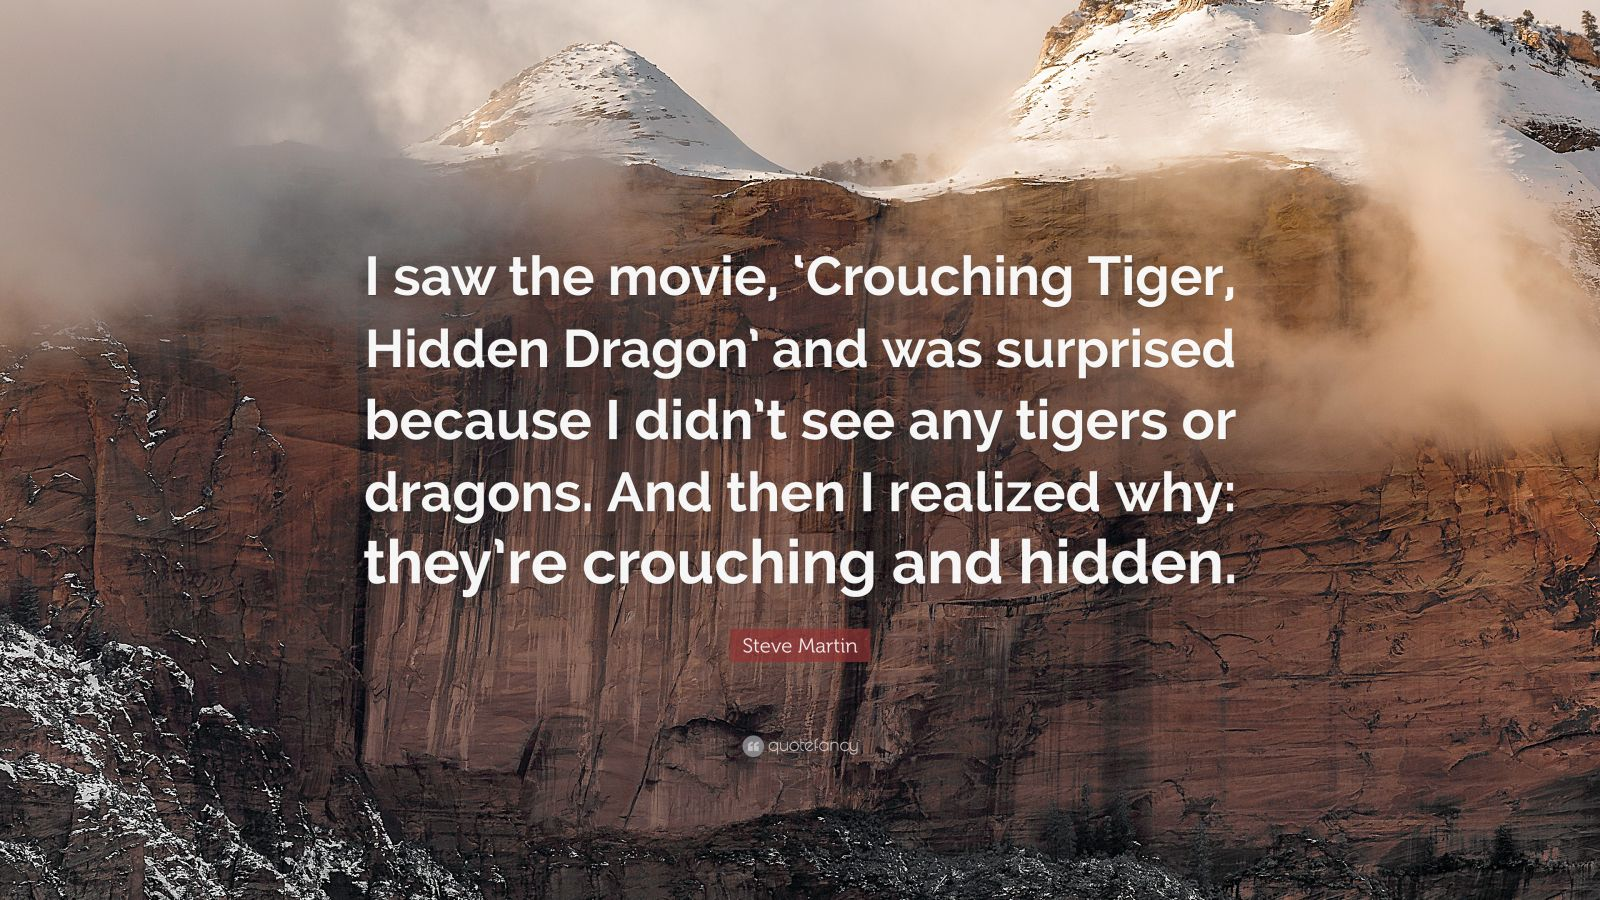 "Steve Martin Quote: ""I saw the movie, 'Crouching Tiger, Hidden Dragon' and was surprised because I didn't see any tigers or dragons. And then I realized why: they're crouching and hidden."""